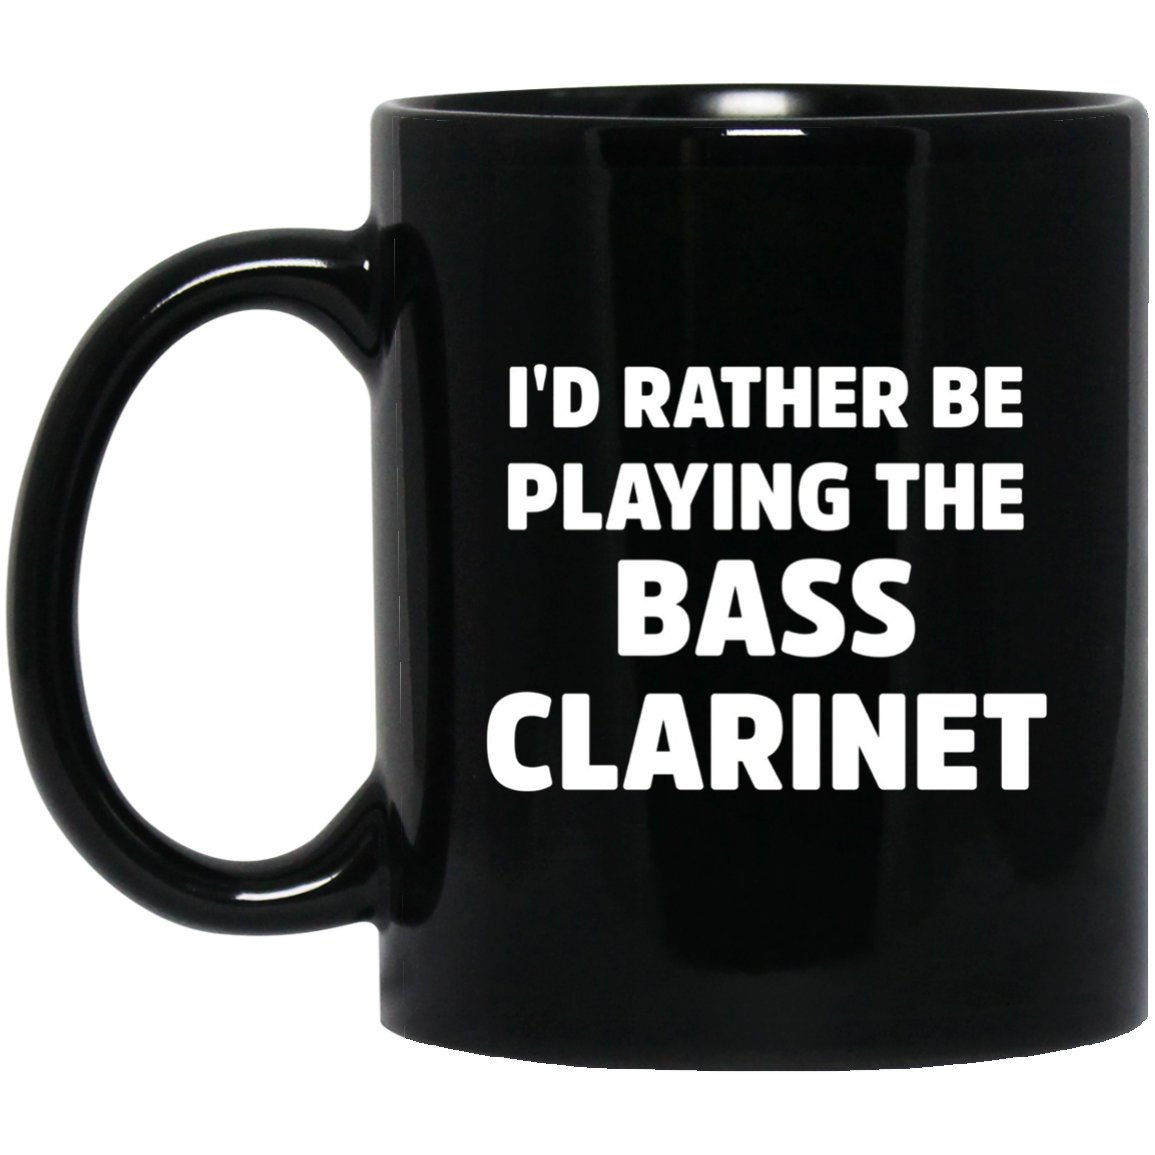 I_d Rather Be Playing The Bass Clarinet Black  Mug Black Ceramic 11oz Coffee Tea Cup